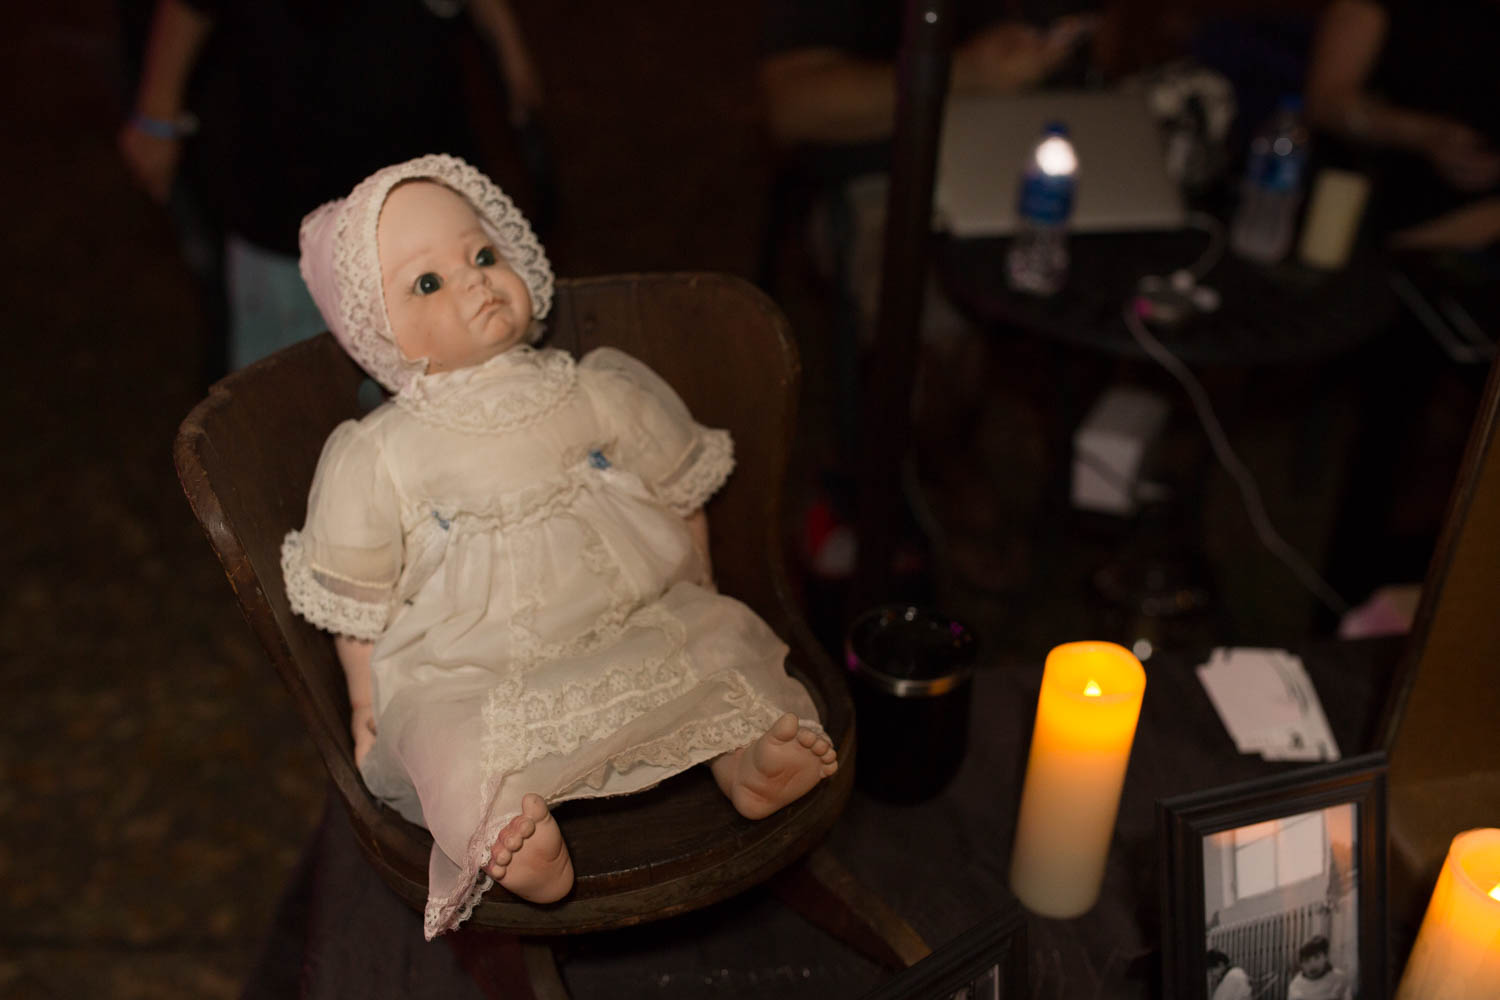 Photos: Victoria Black Swan Inn showcases spooky history to paranormal fans